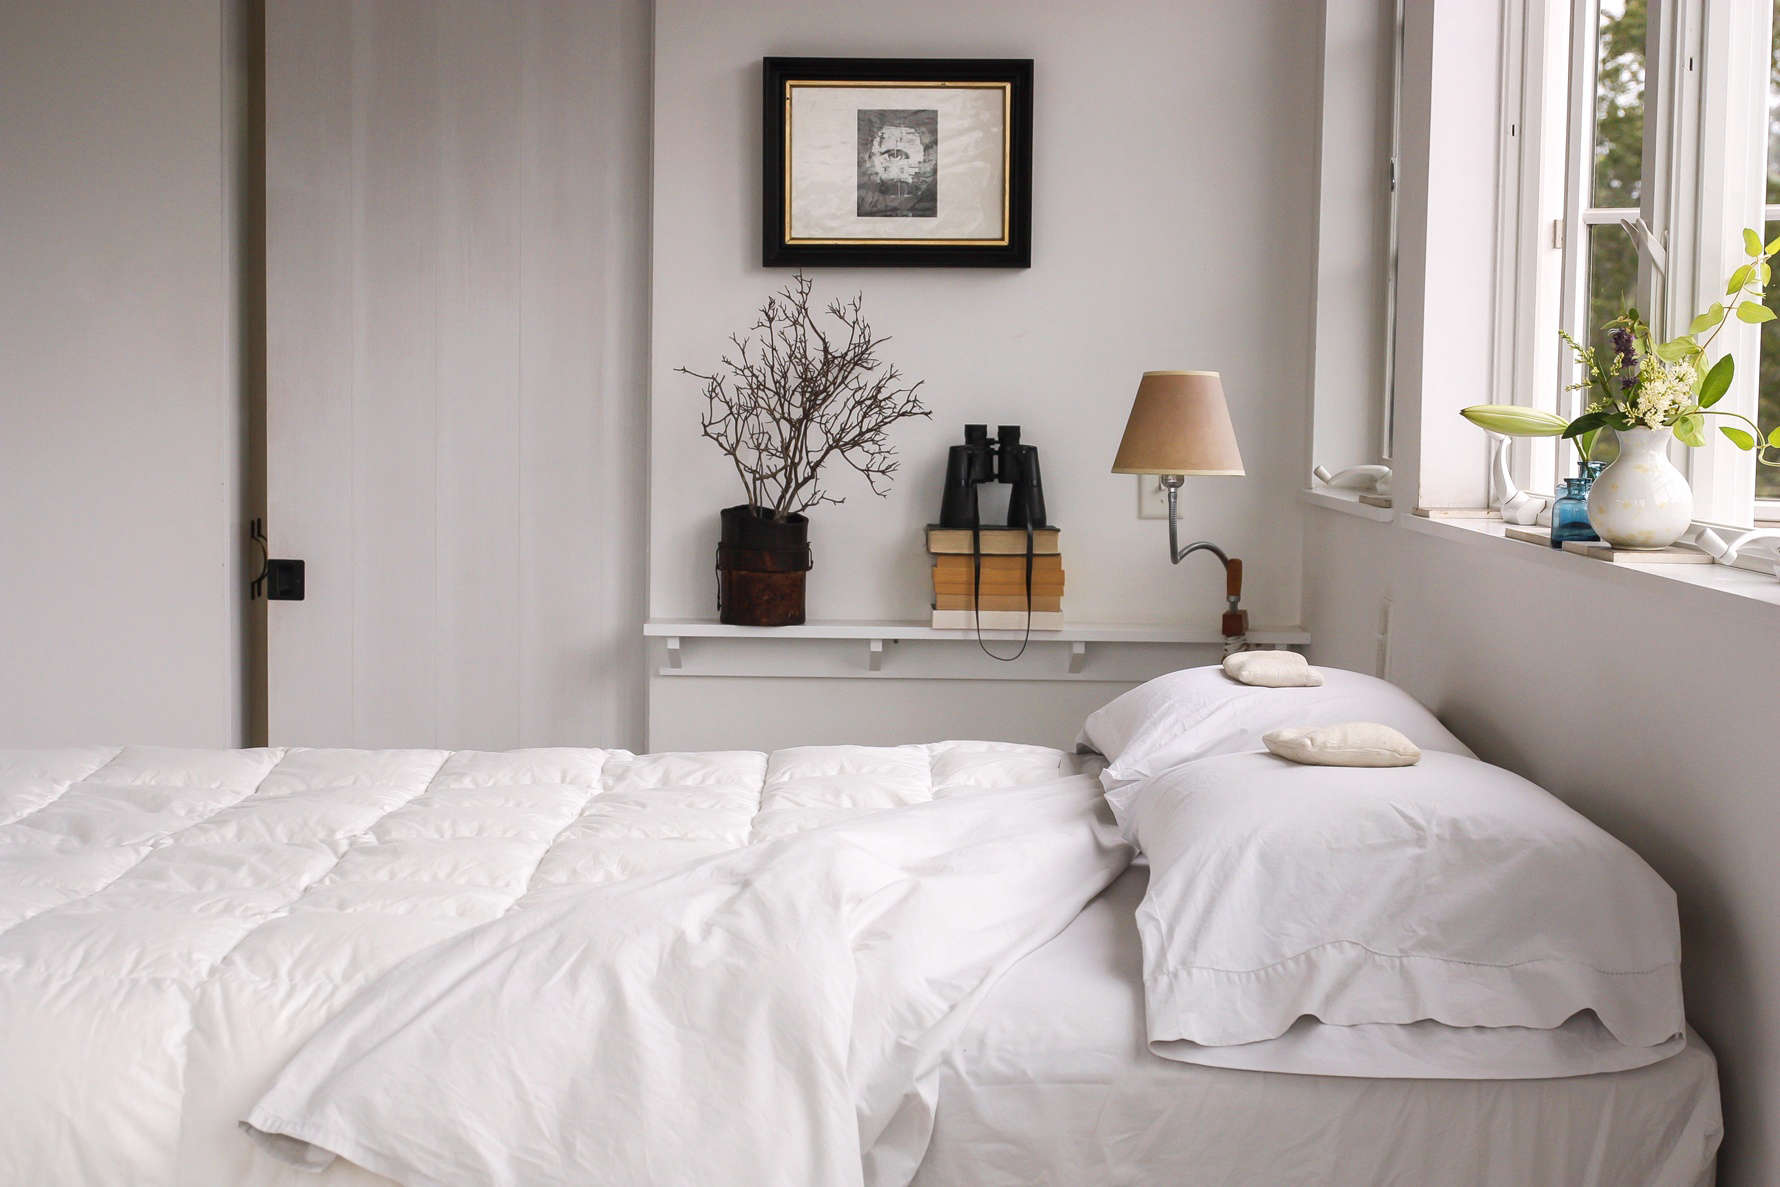 Domestic Science: How to Wash a Down Comforter - The Organized Home